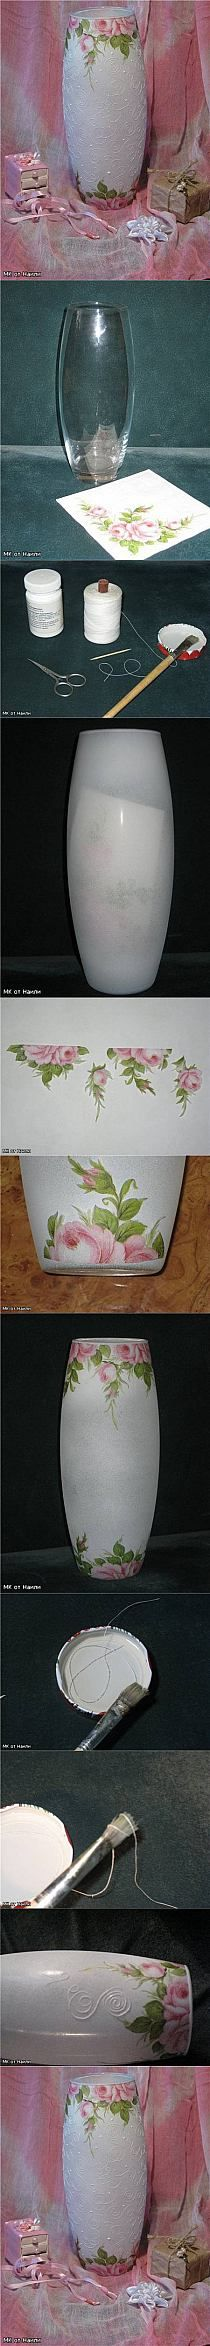 Discover thousands of images about Decoupage and hot glue idea for decorated bottles Mason Jar Crafts, Bottle Crafts, Diy Projects To Try, Art Projects, Project Ideas, Fun Crafts, Diy And Crafts, Decoration Shabby, Bottle Art